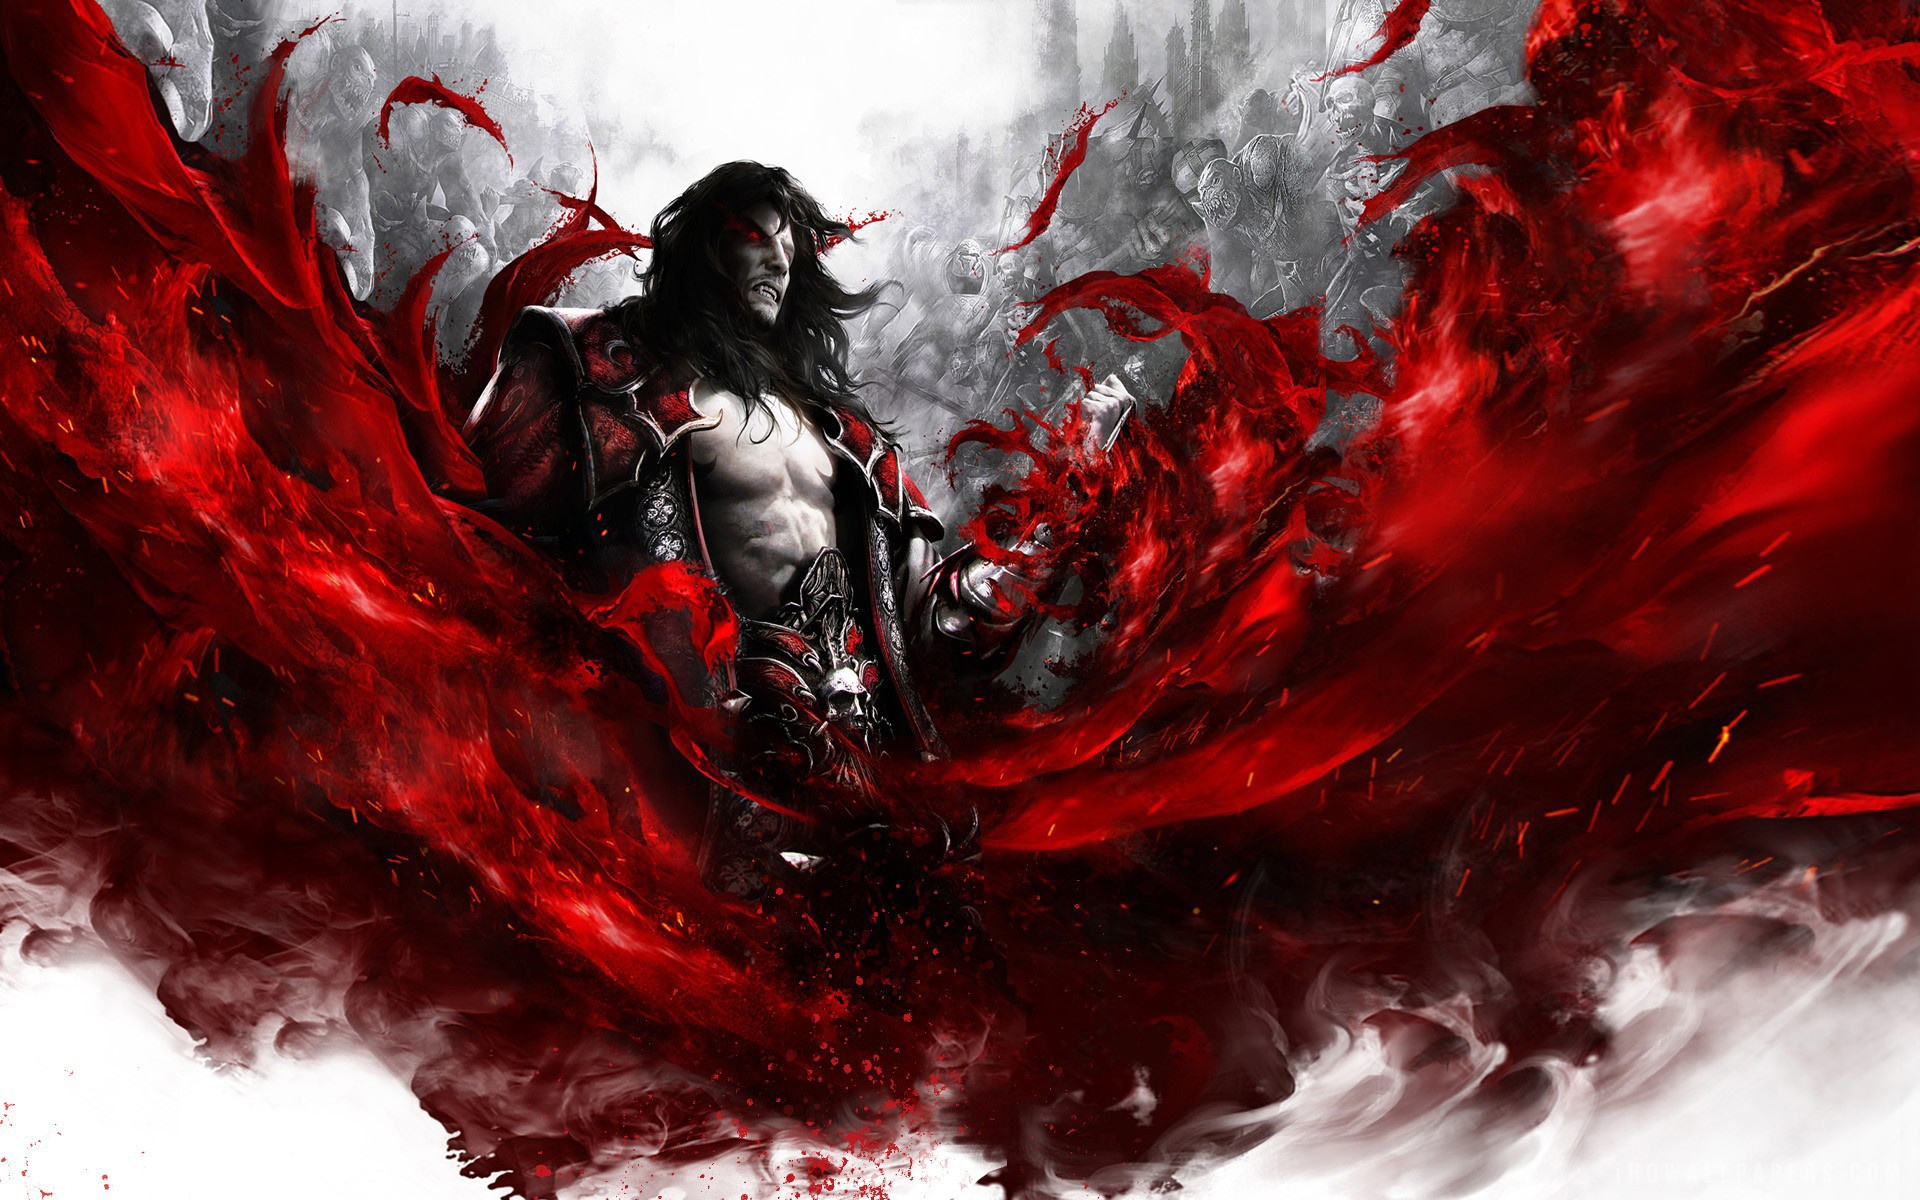 castlevania_lords_of_shadow_2_game-1920x1200